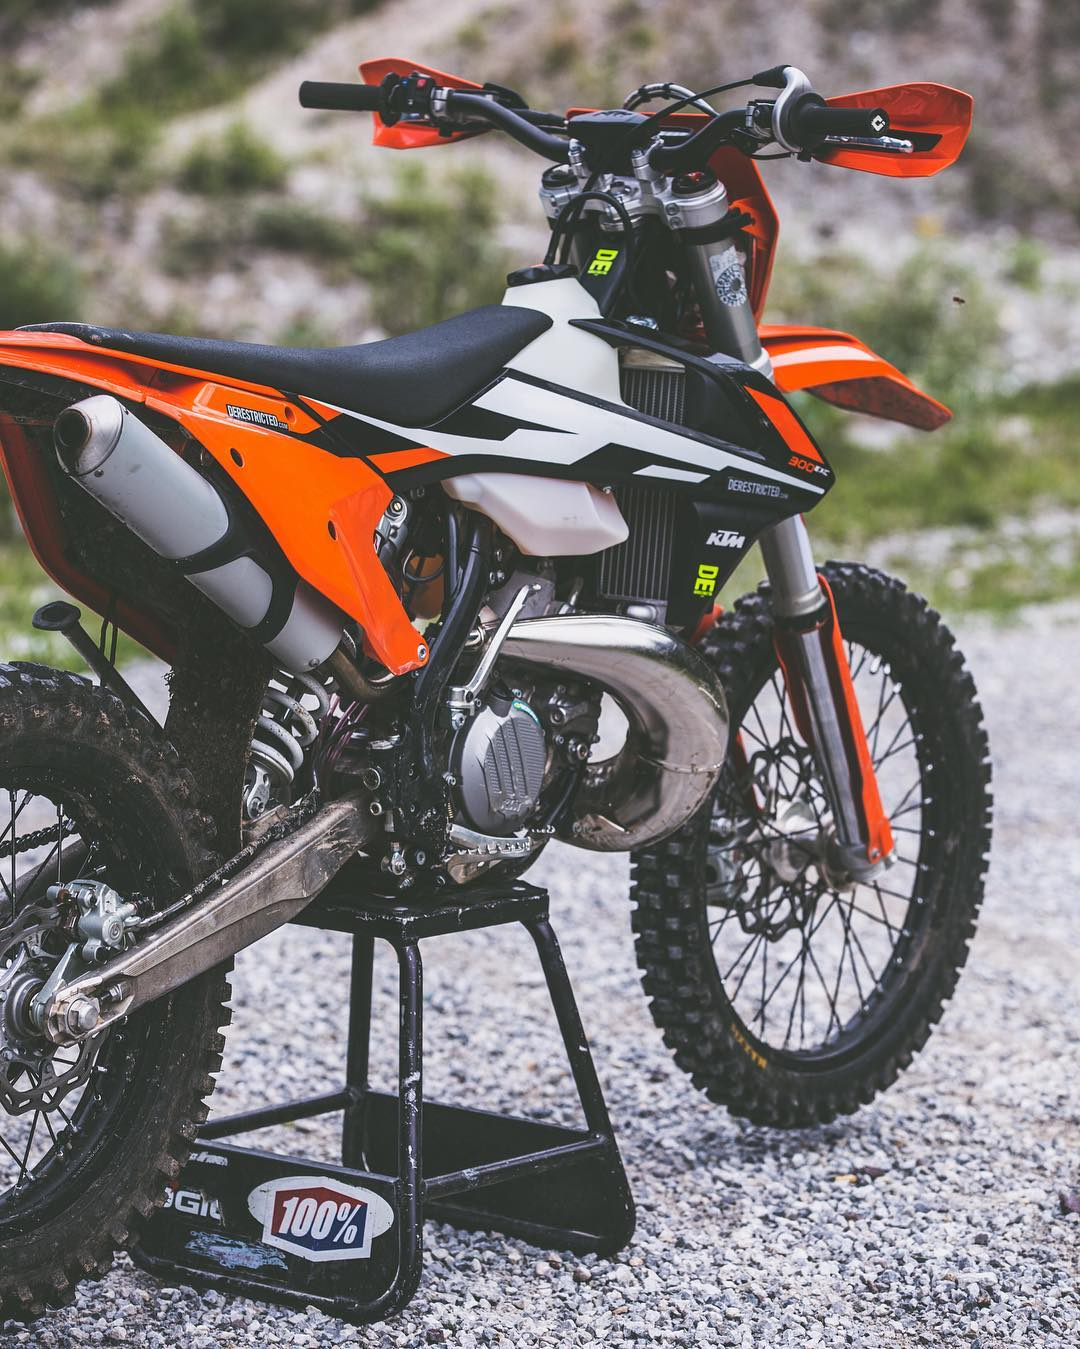 New sticker kit on it's way, curious to see how it looks as we just did it direct in illustrator instead of checking it over a photo or printing it out to check it first live on the bike. Maybe it will be a little wonky but we will see 😋 #KTM #300exc #enduro